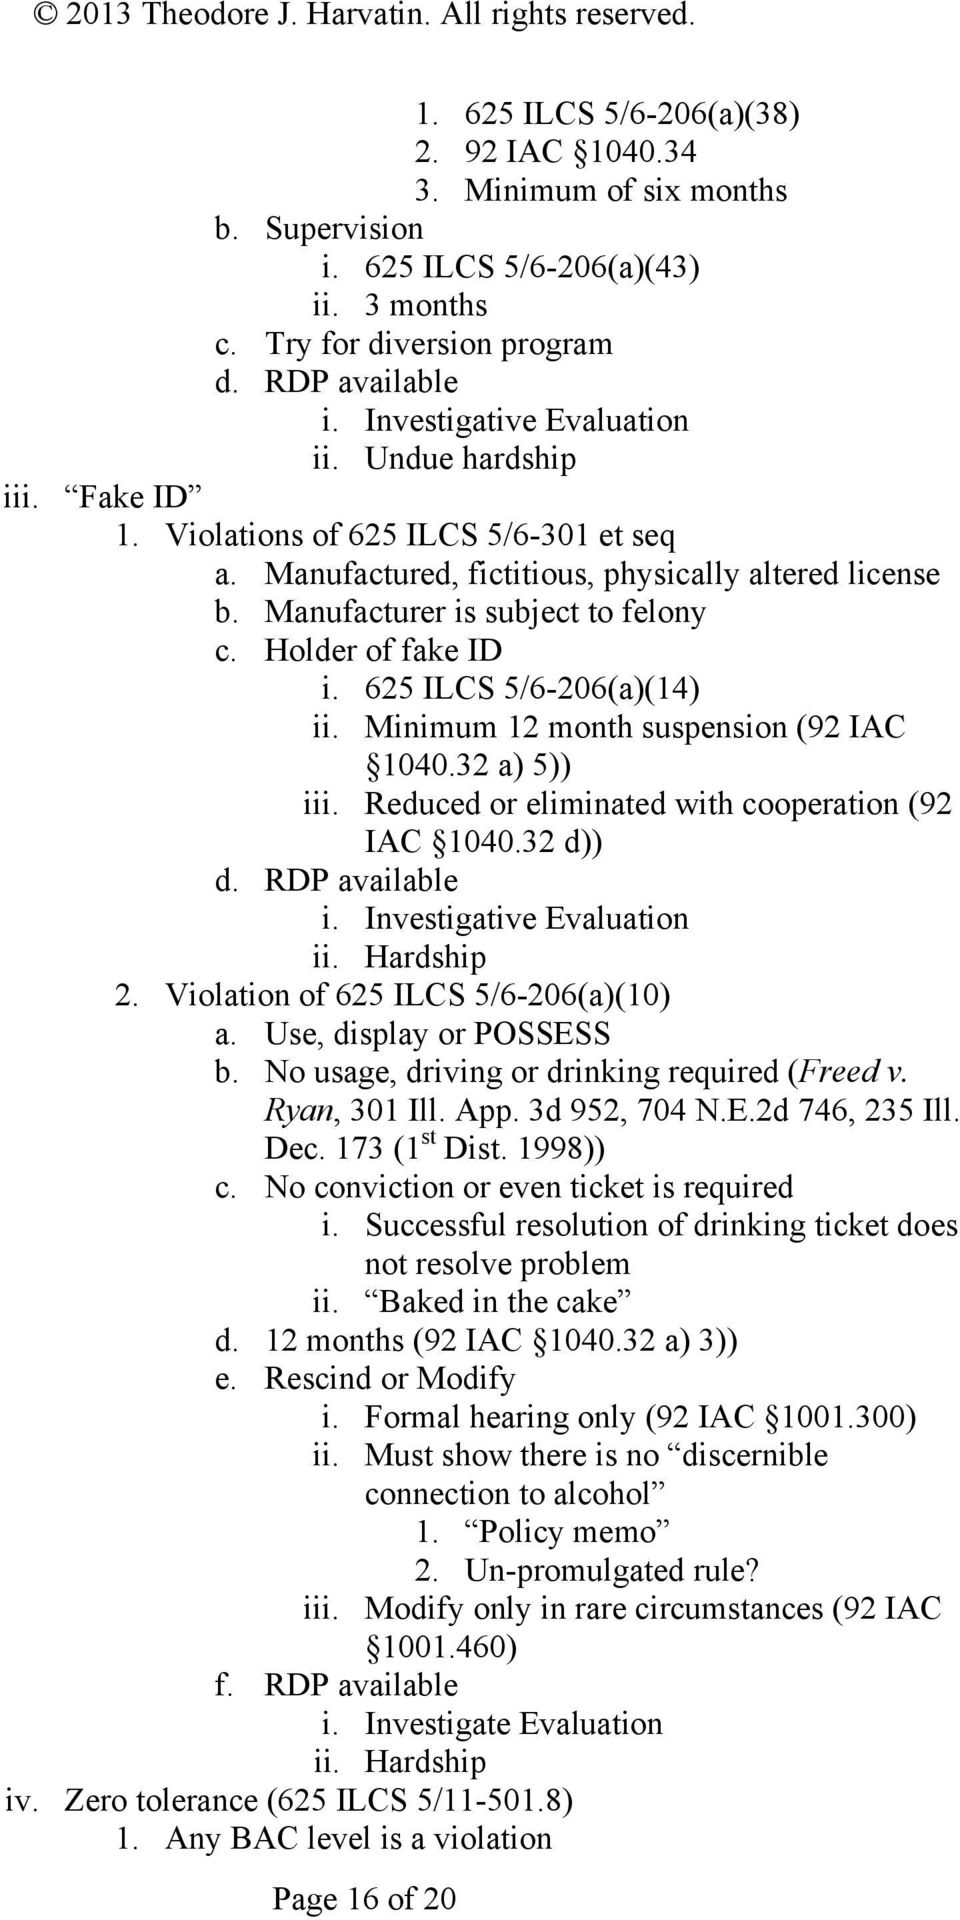 Holder of fake ID i. 625 ILCS 5/6-206(a)(14) ii. Minimum 12 month suspension (92 IAC 1040.32 a) 5)) iii. Reduced or eliminated with cooperation (92 IAC 1040.32 d)) d. RDP available i.